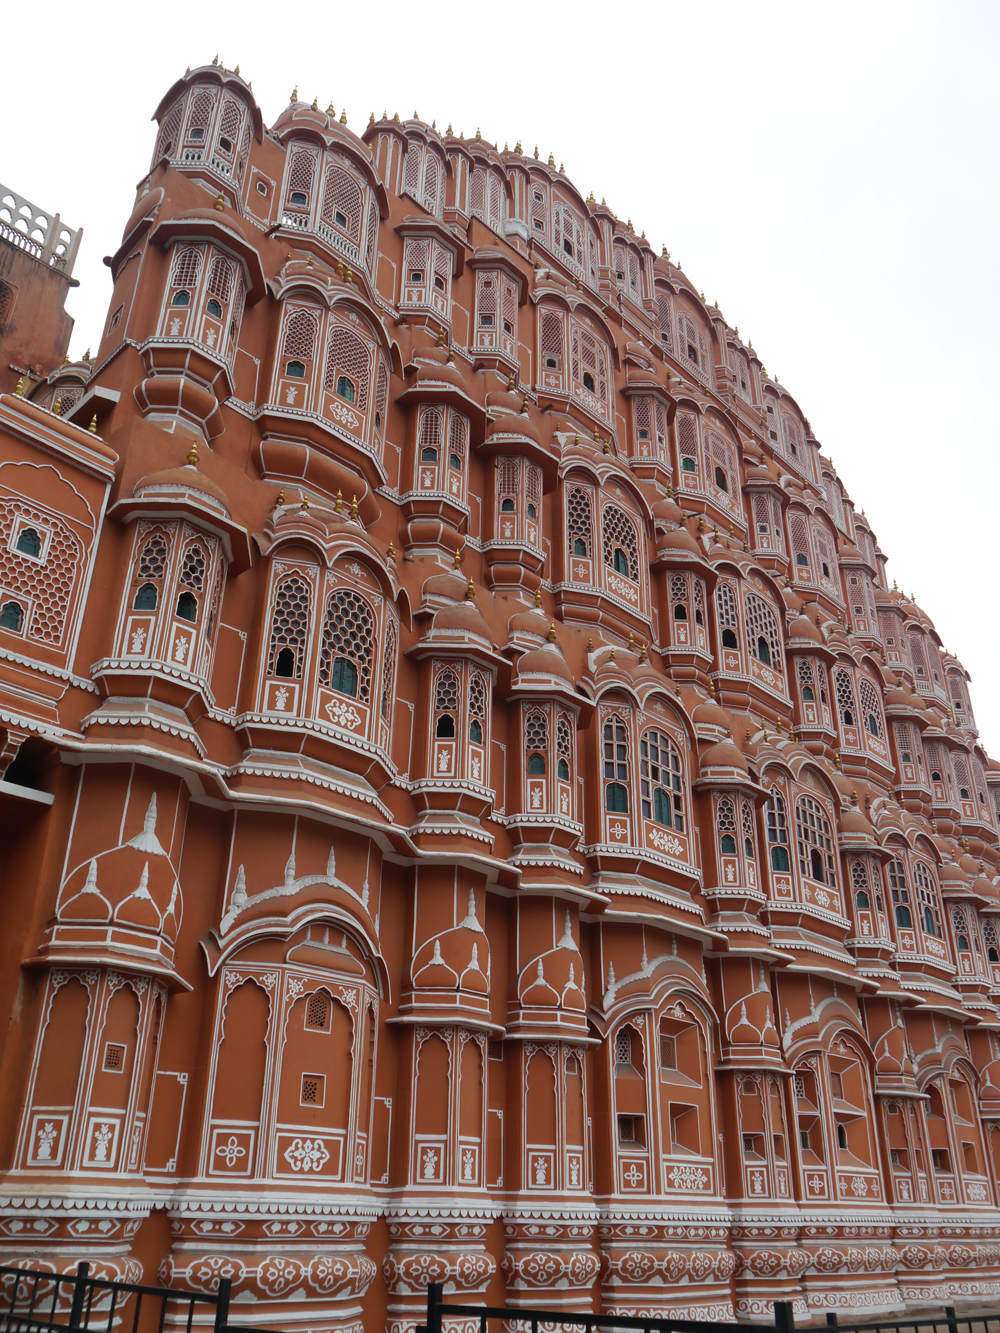 Jaipur, jaipur tourist places, jaipur india, jaipur tourism, places to visit in jaipur